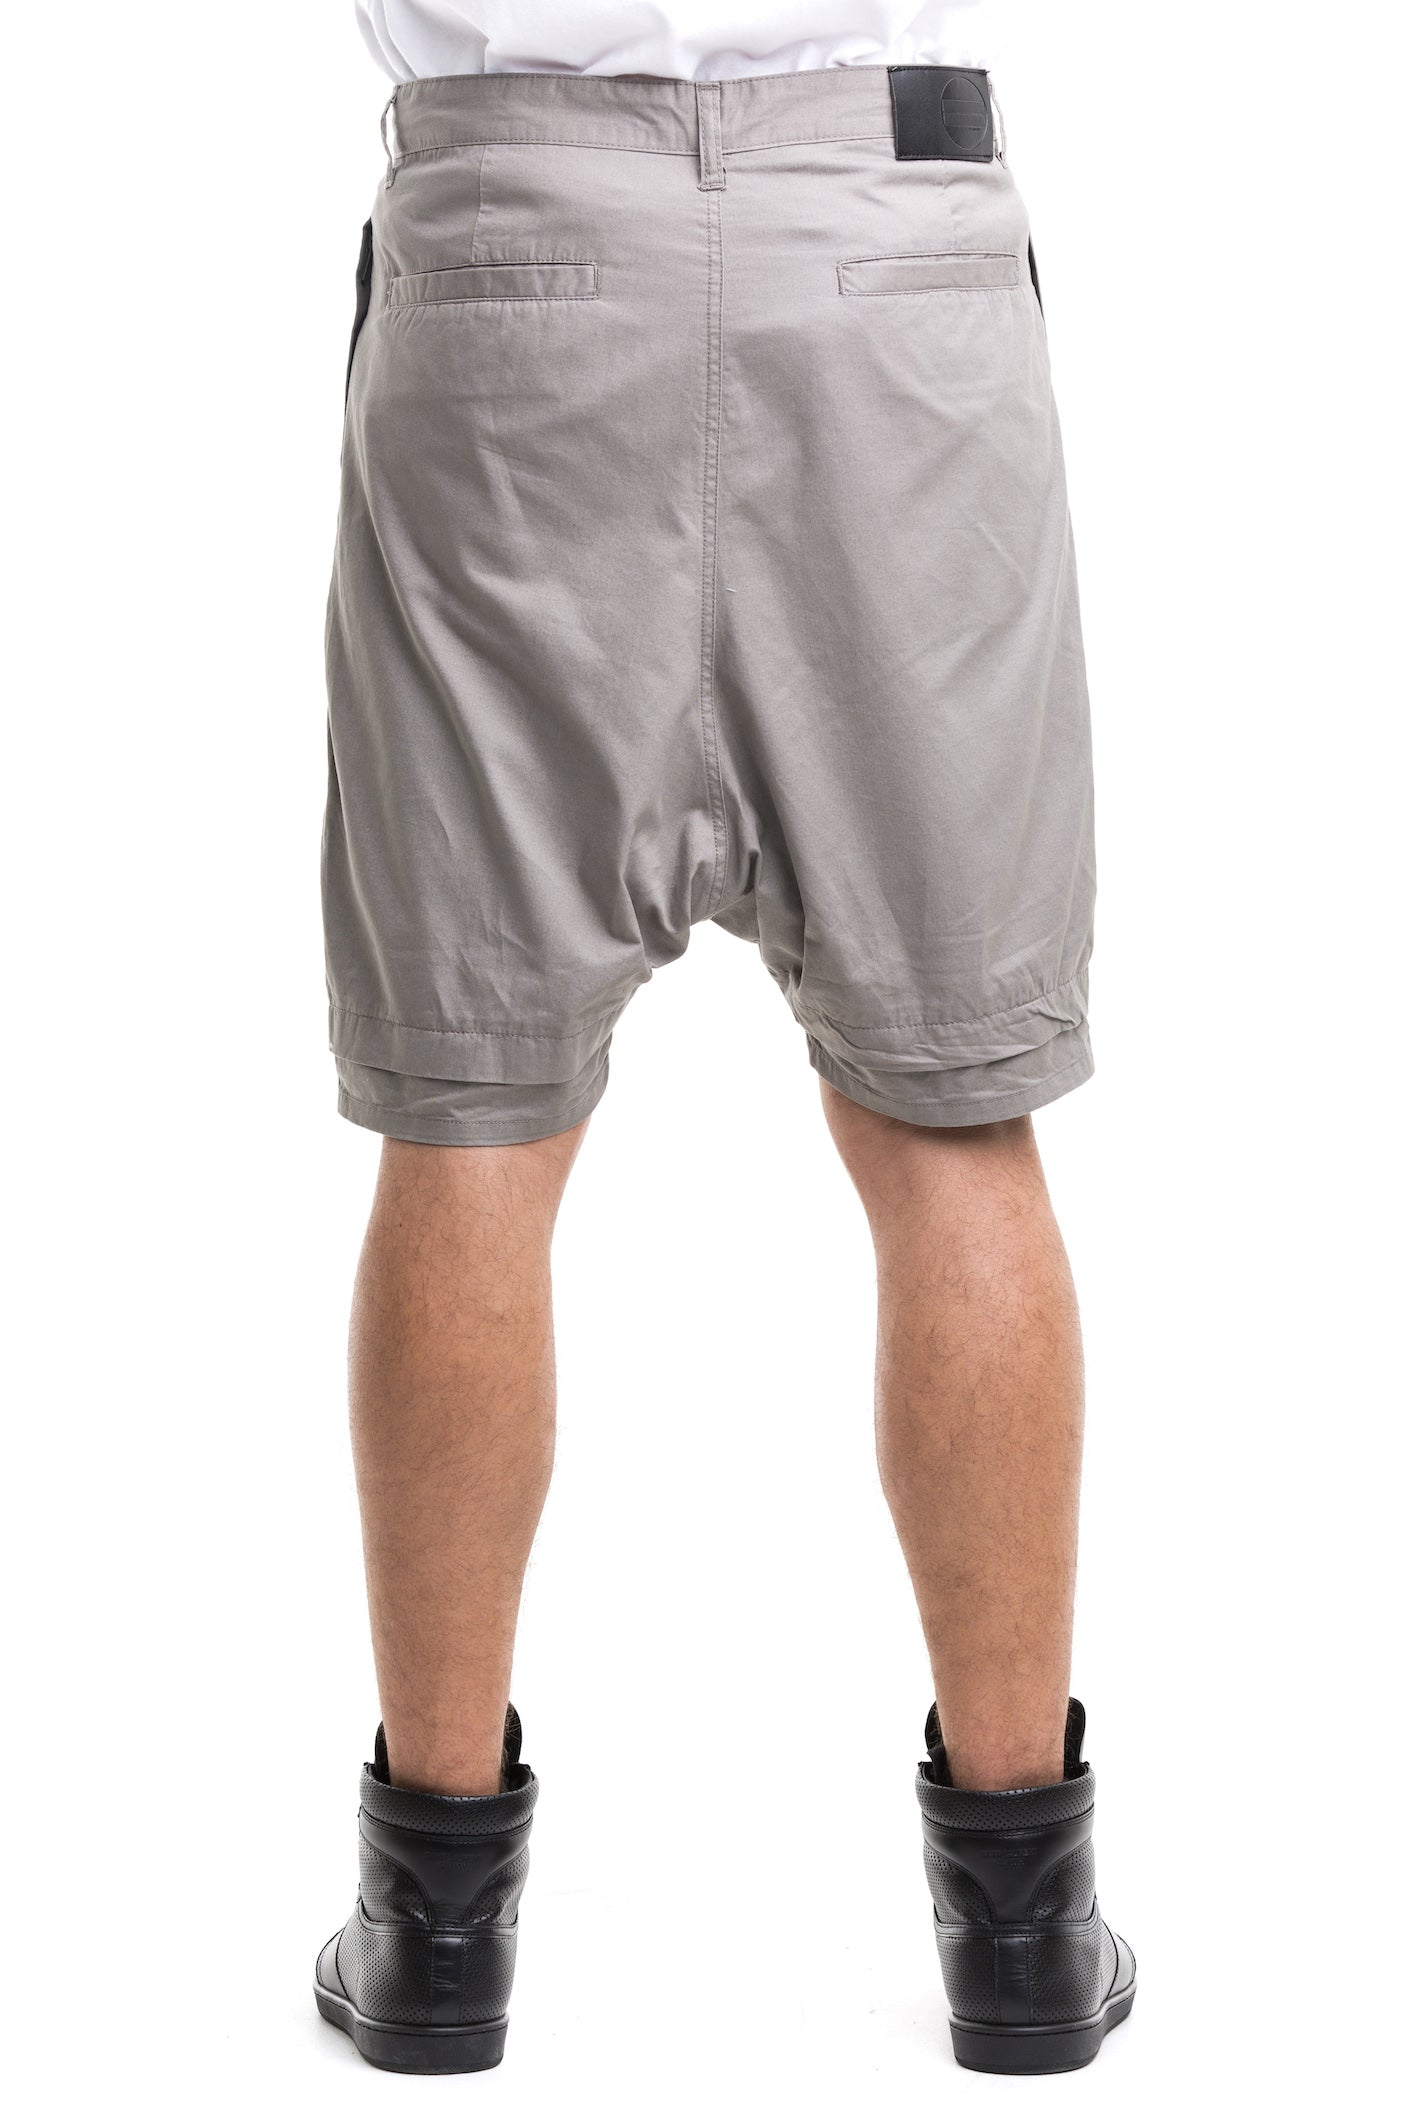 Rarefied Shorts - GREY